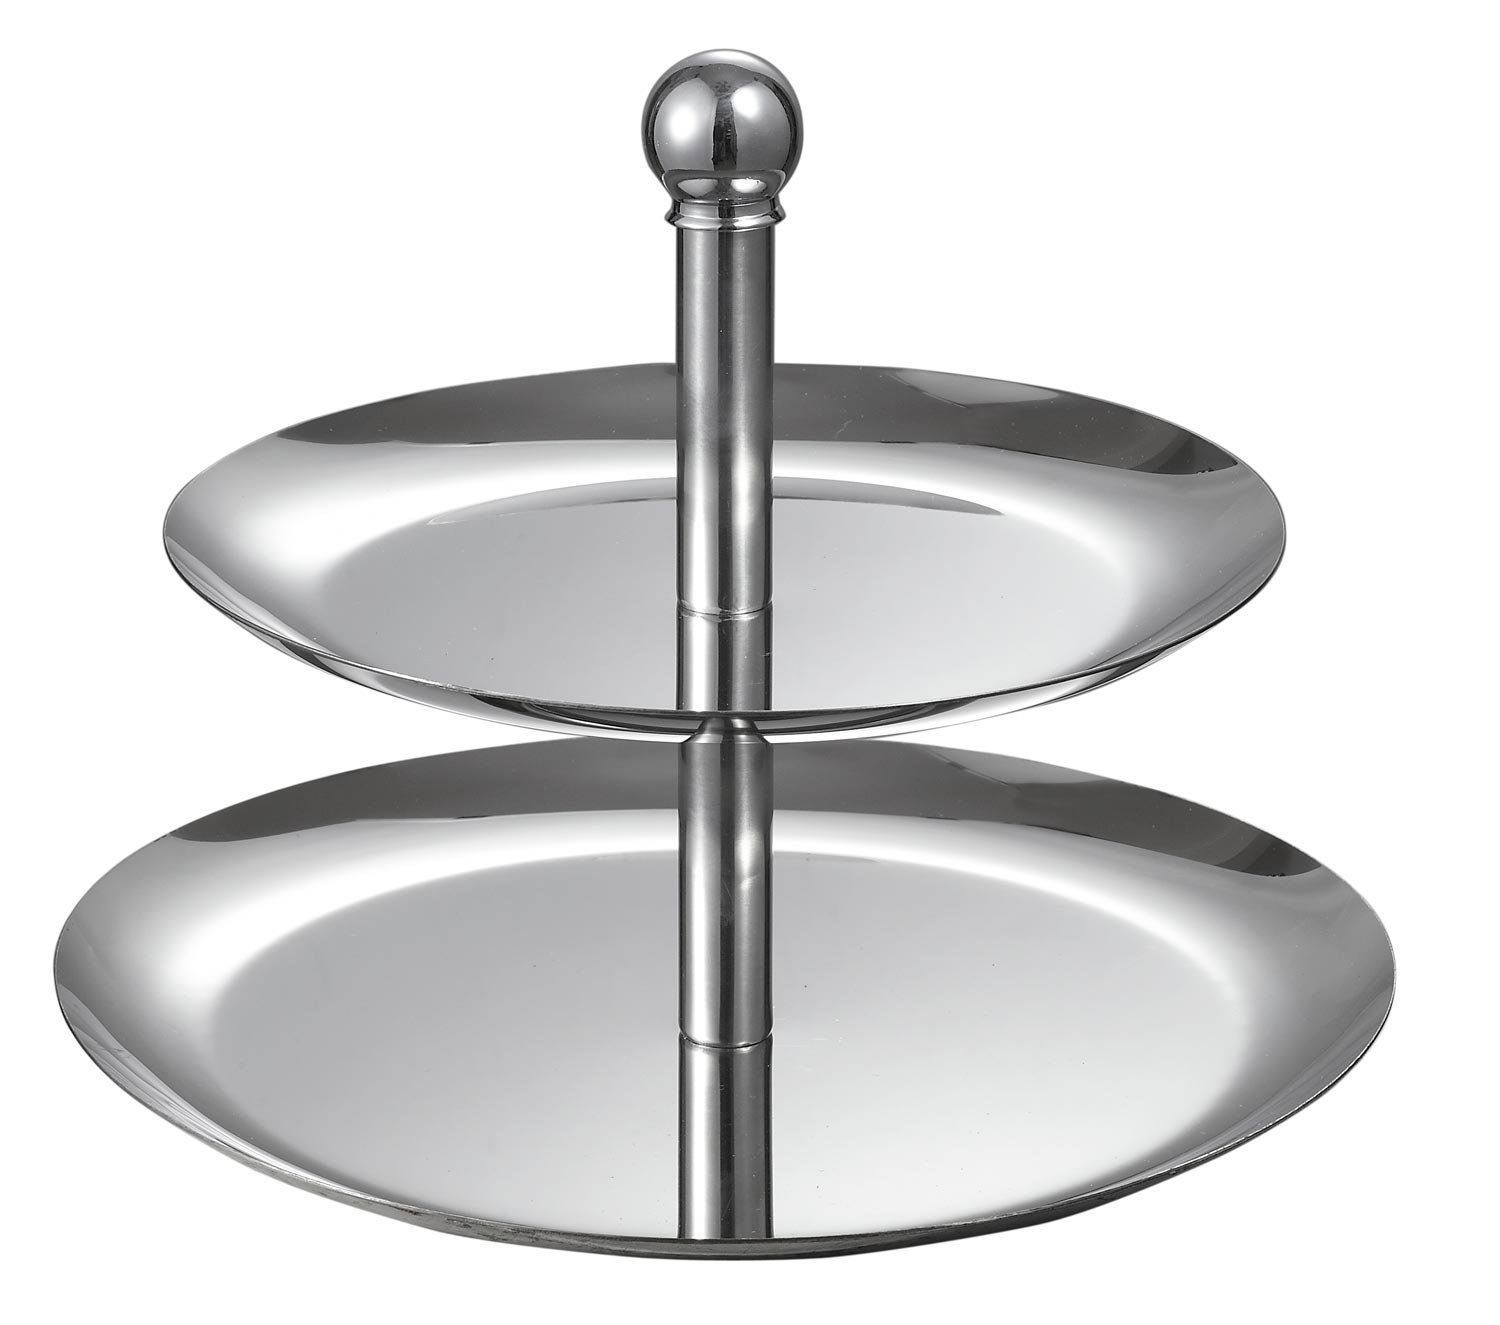 Visol Products 2-Tier Stainless Steel Stand for Serving Candy/Dessert/Cheese/Cupcake/Fruit, Silver VAC328